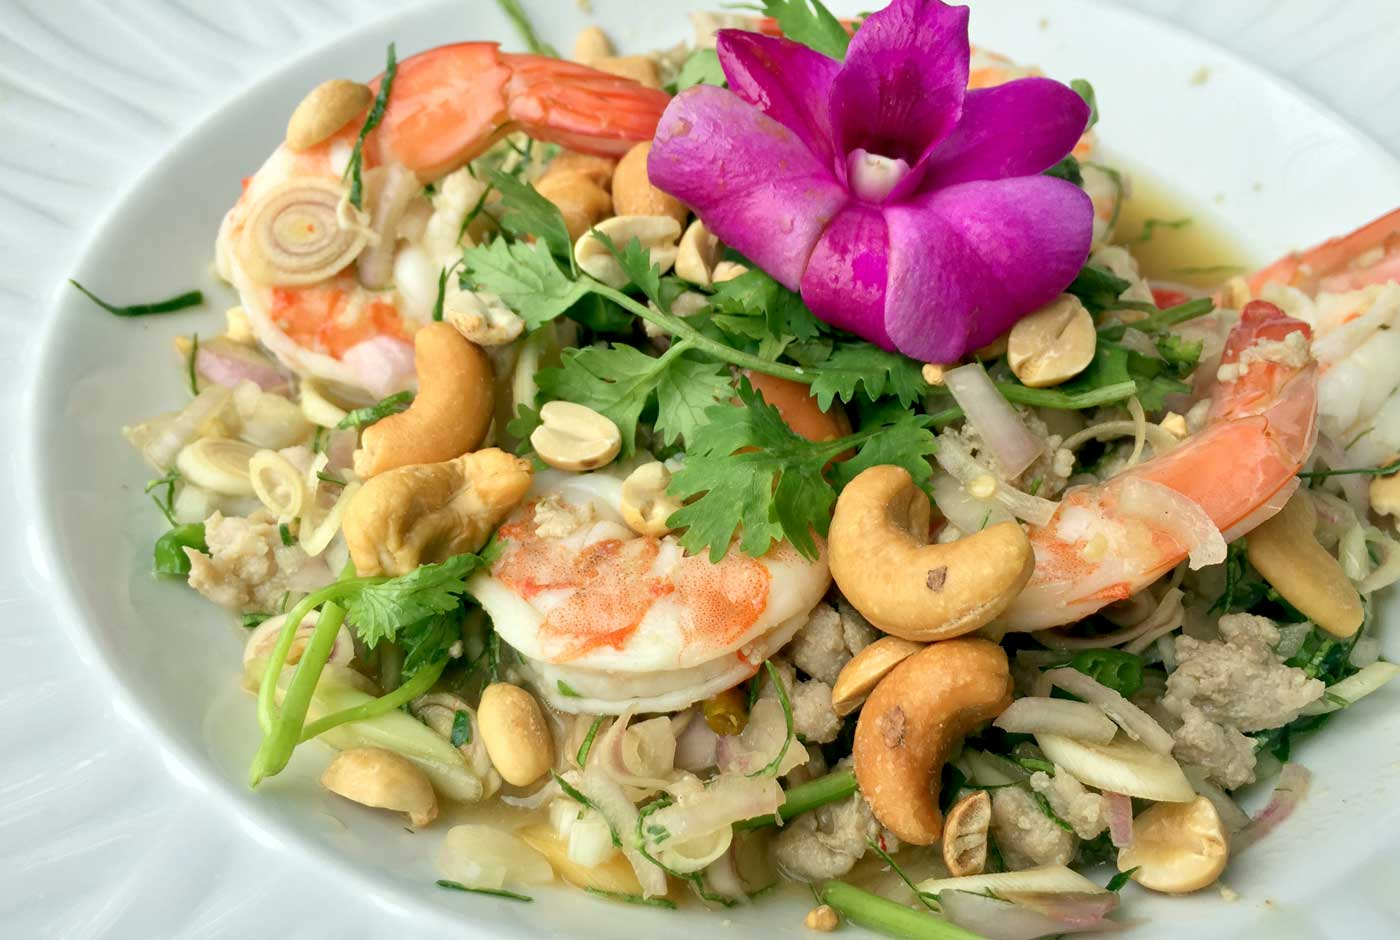 Lemongrass salad with shrimp